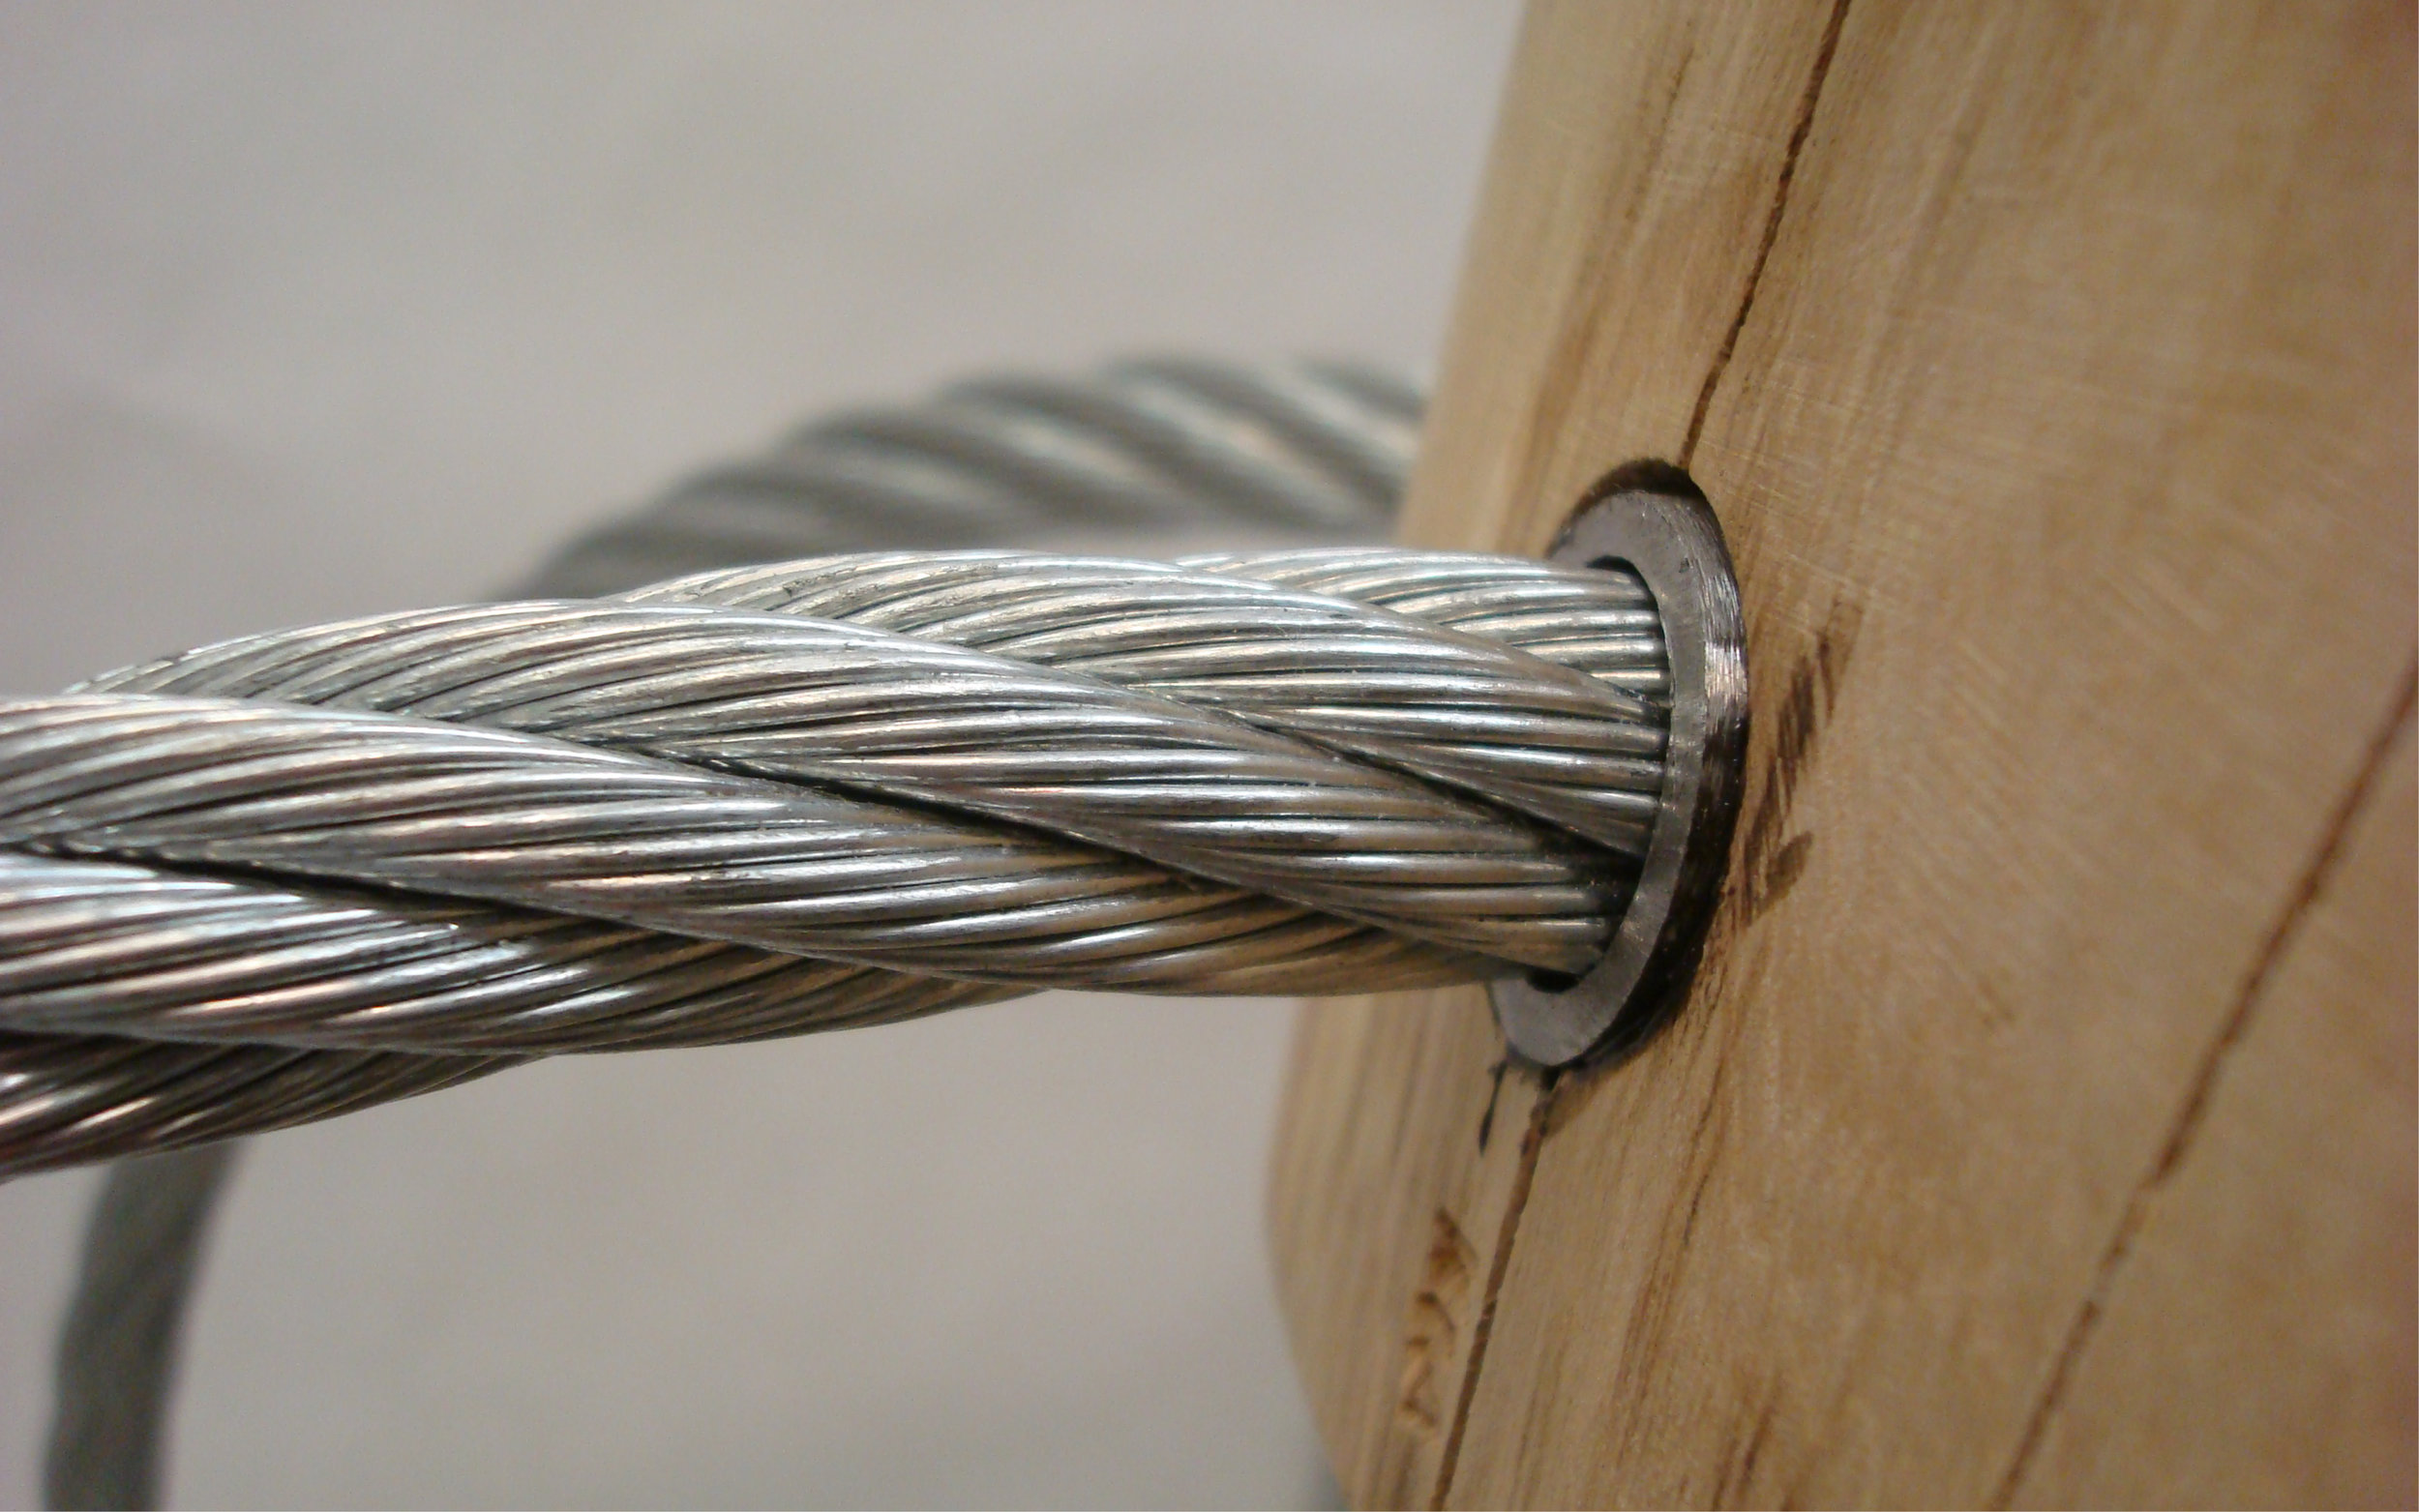 I selected minimal, press-fit hardware that would hold the members in place securely but unobtrusively, and left the elm -- sourced from the forests around my family home in New Hampshire -- in its raw form to preserve its natural beauty and contrast the industrial aesthetic of the braided steel cable.